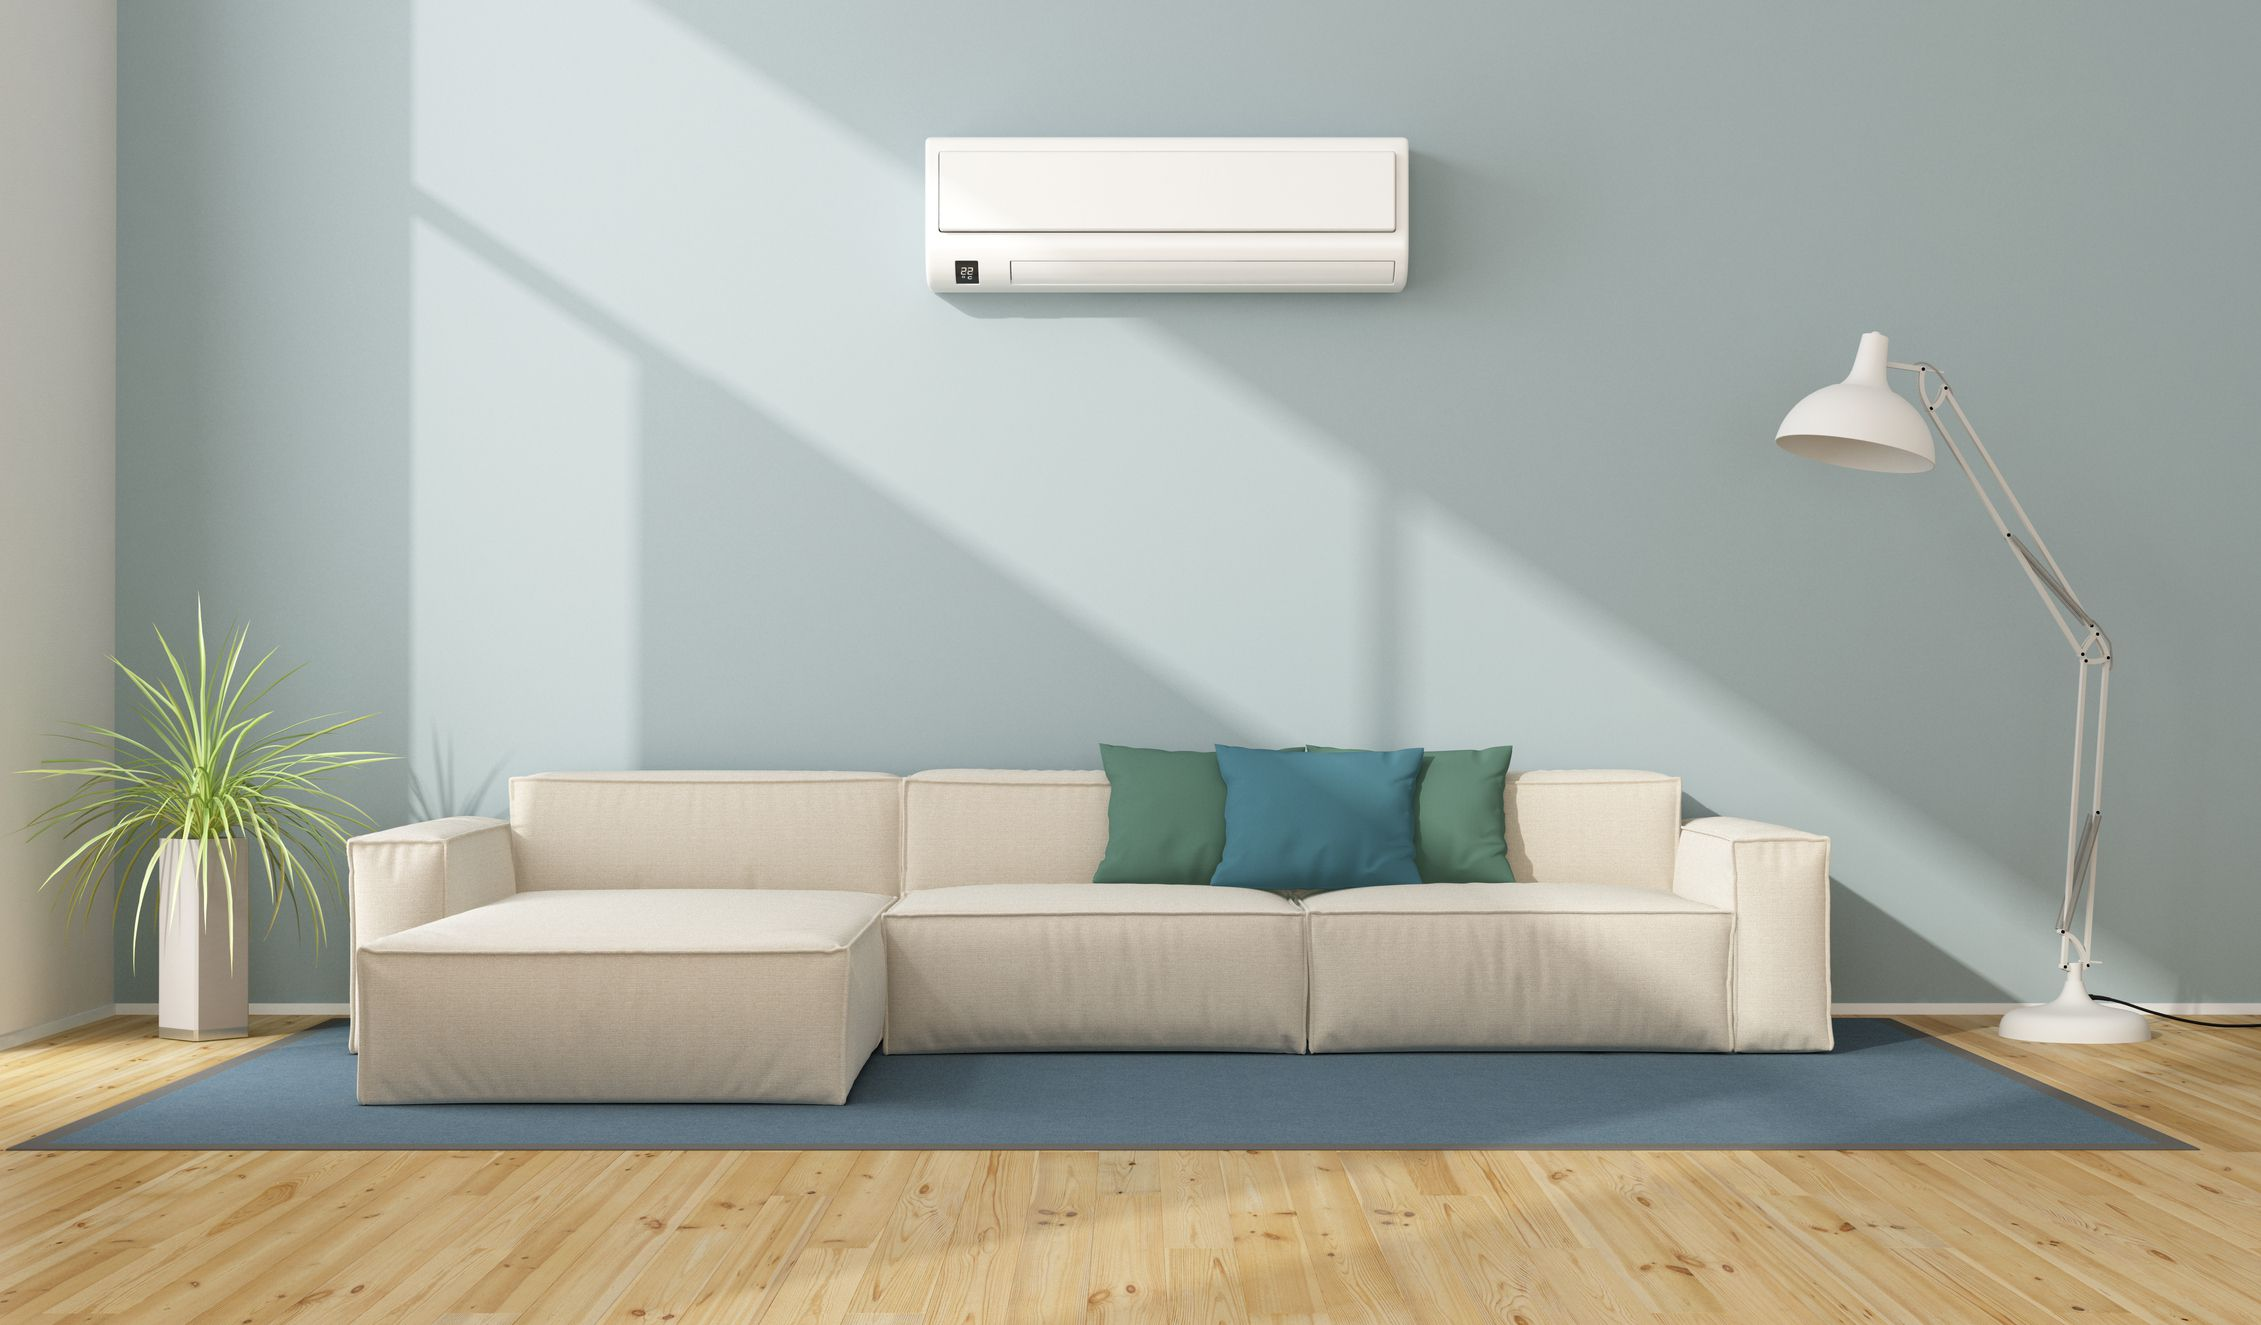 Window Air Conditioning Chart Btus For, Living Room Air Conditioner